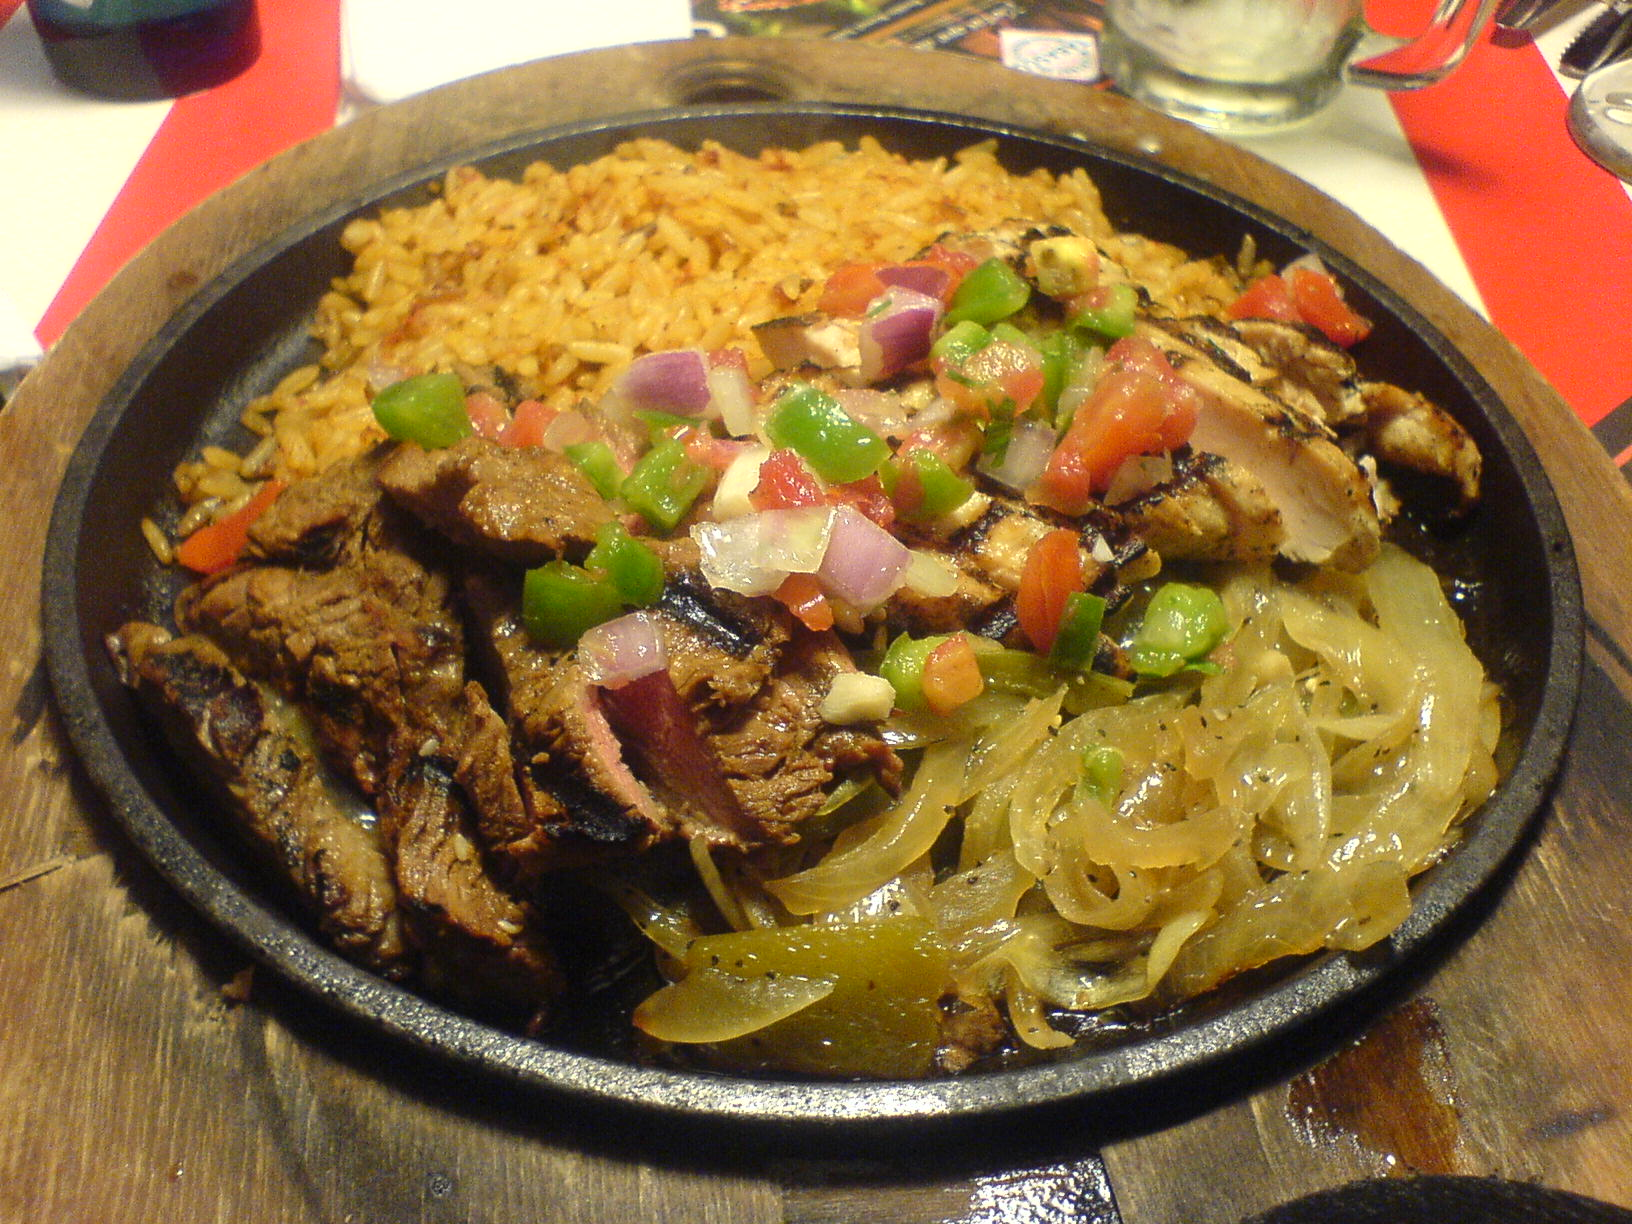 tex-mex-from-texan-and-mexican-secret-world